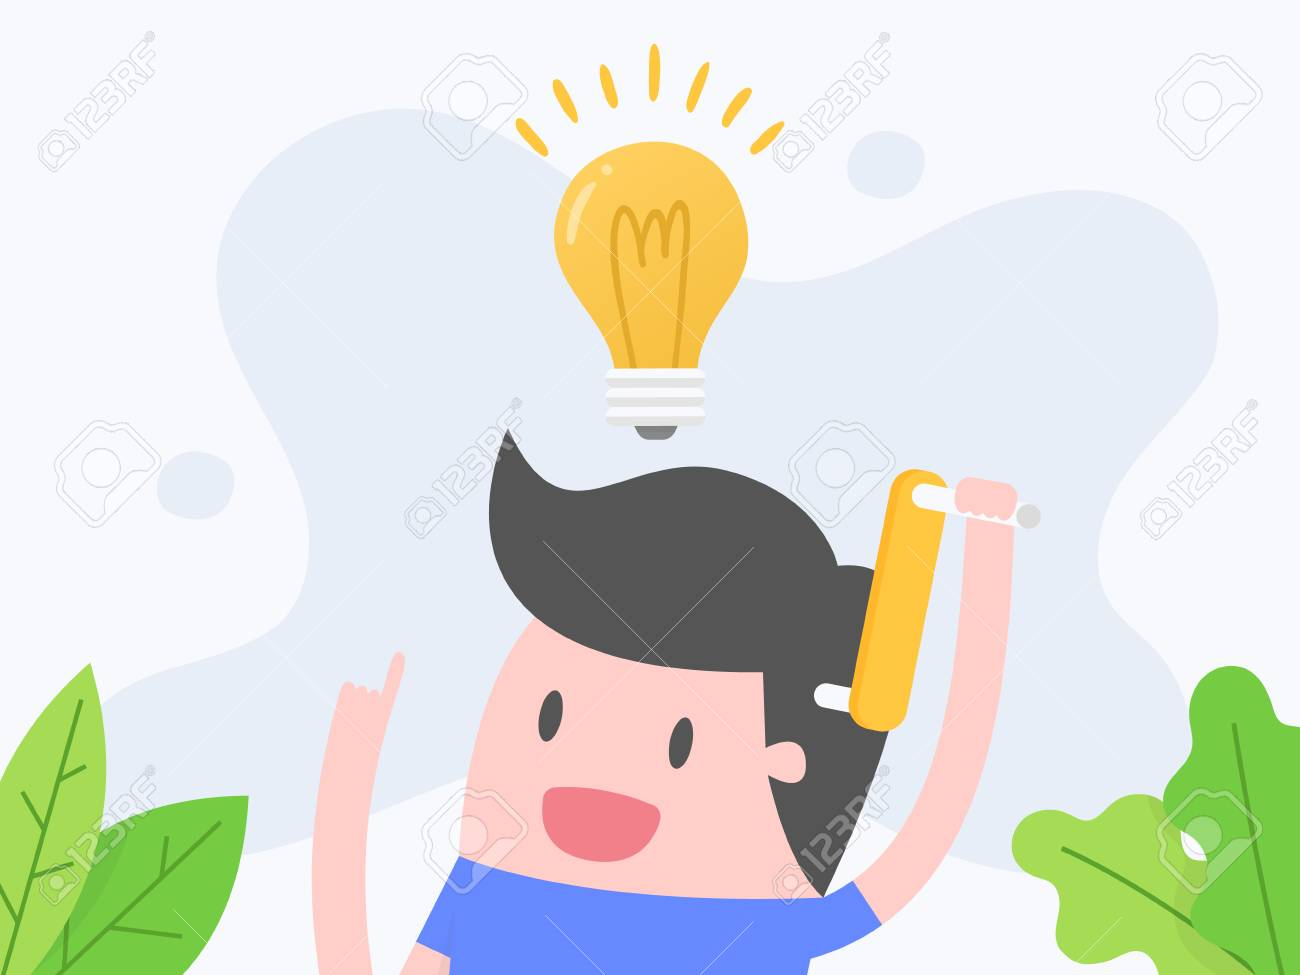 Vector illustration concept of thinking. businessman thinking with light bulb. - 121435273